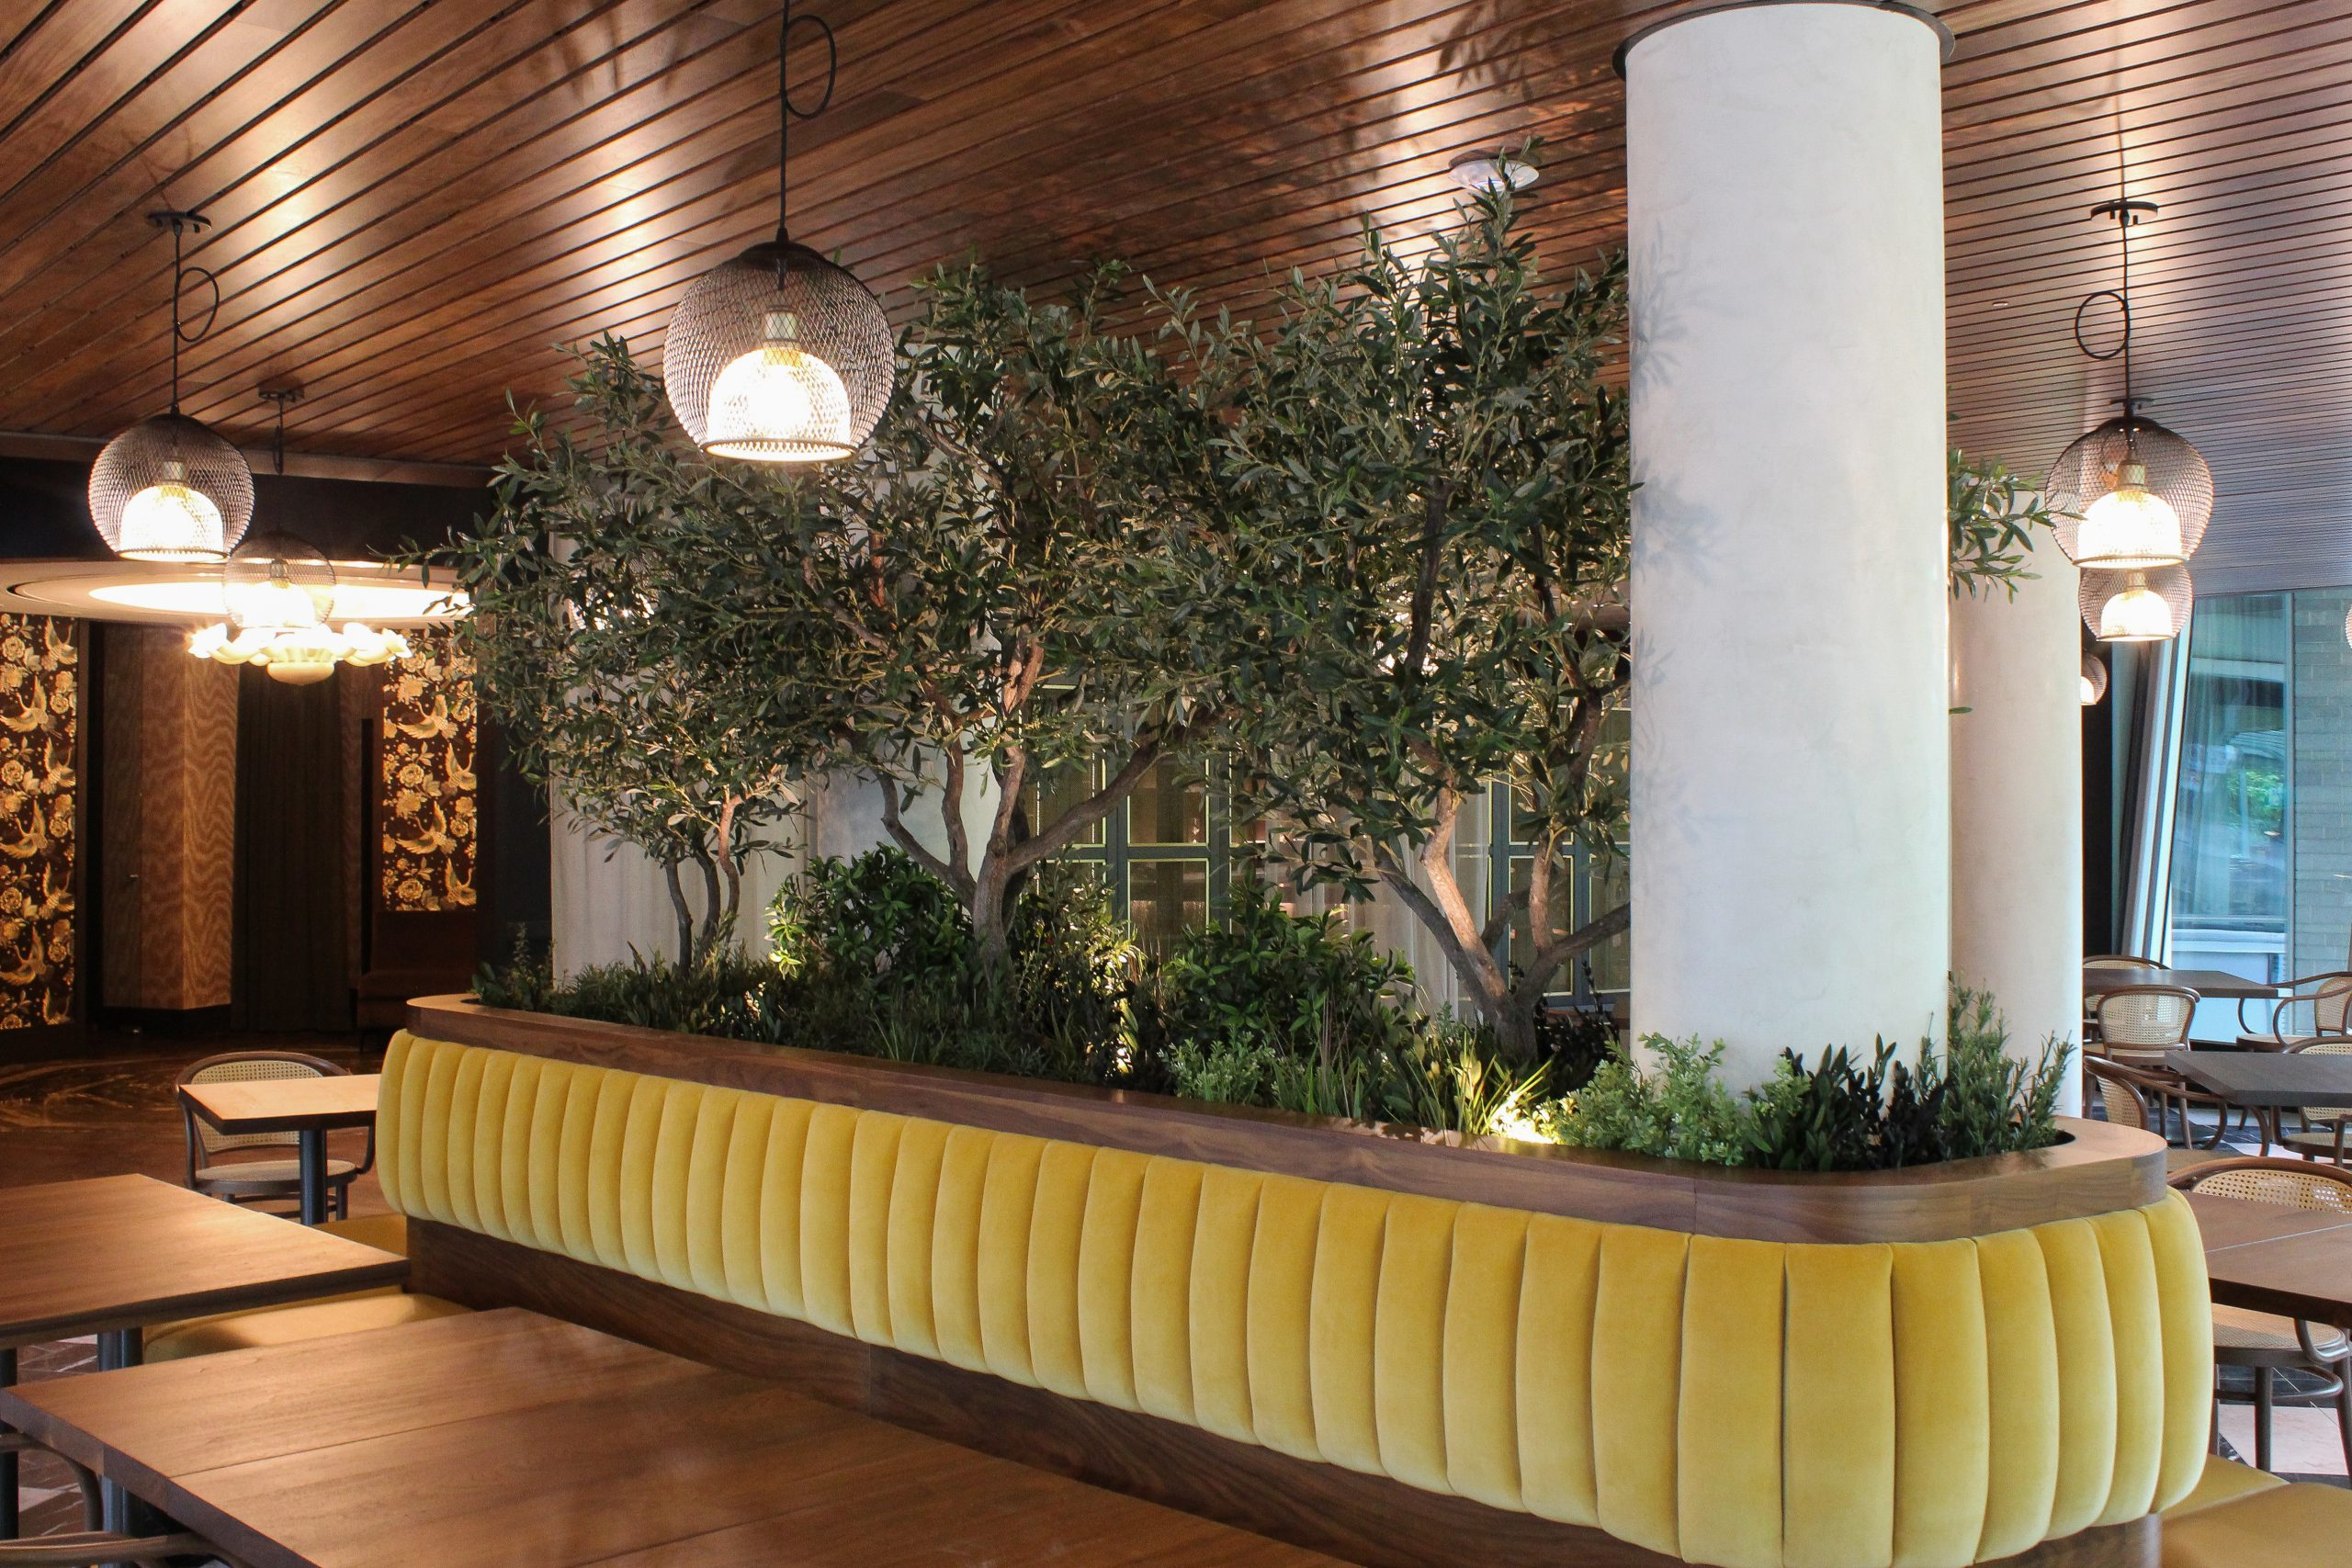 Custom artificial olive trees on natural wood trucks with mixed greenery ground cover set in yellow tufted banquette centre